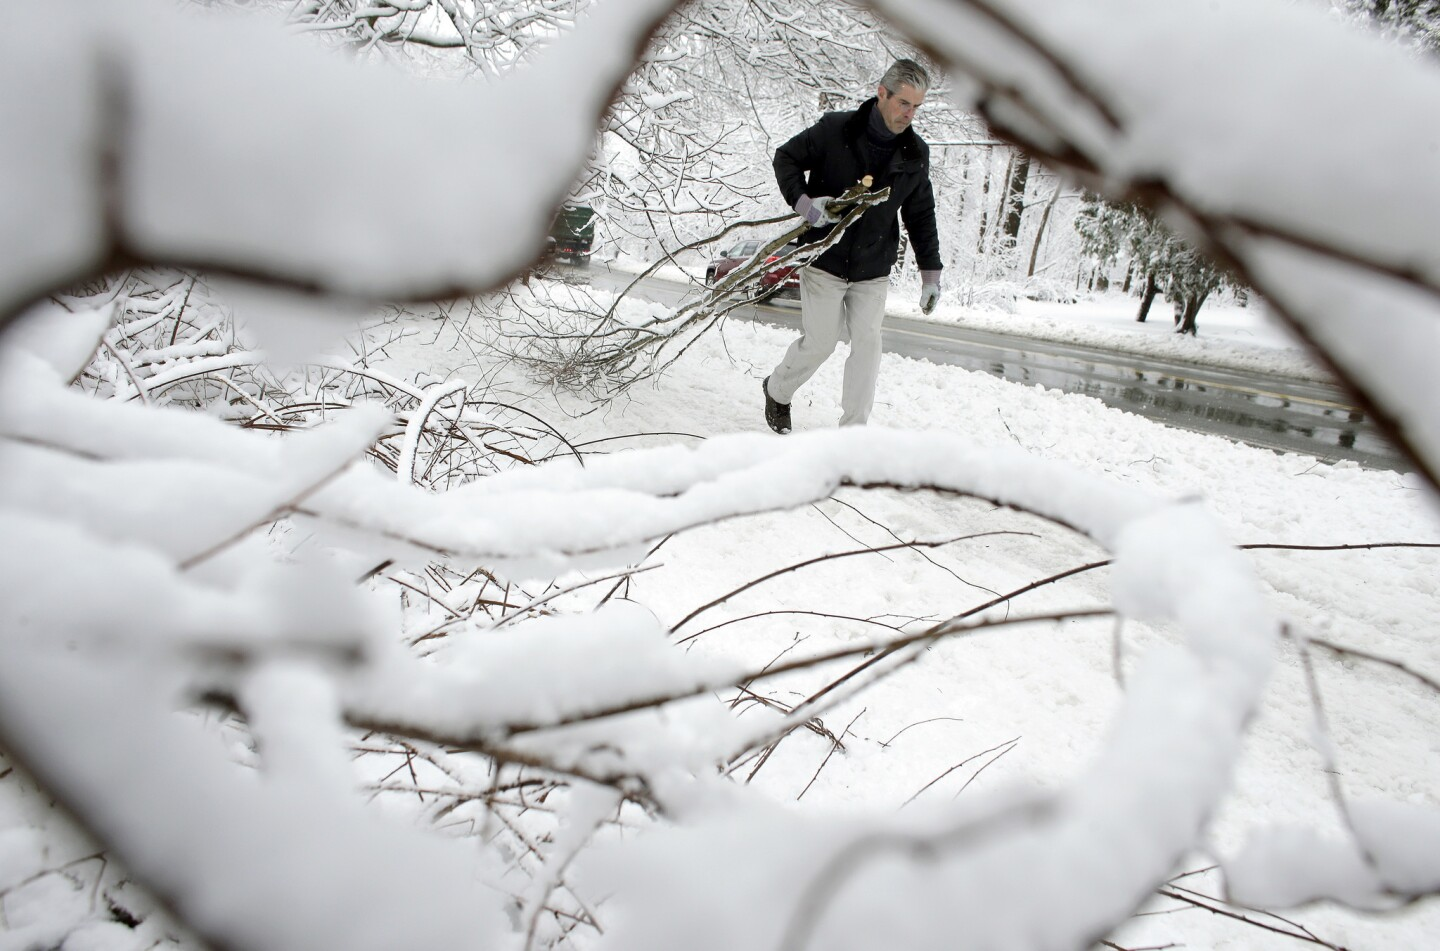 Kevin Crowley removes broken tree branches from a driveway in Sherborn, Mass., on March 8. For the second time in less than a week, a storm rolled into the Northeast with wet, heavy snow.